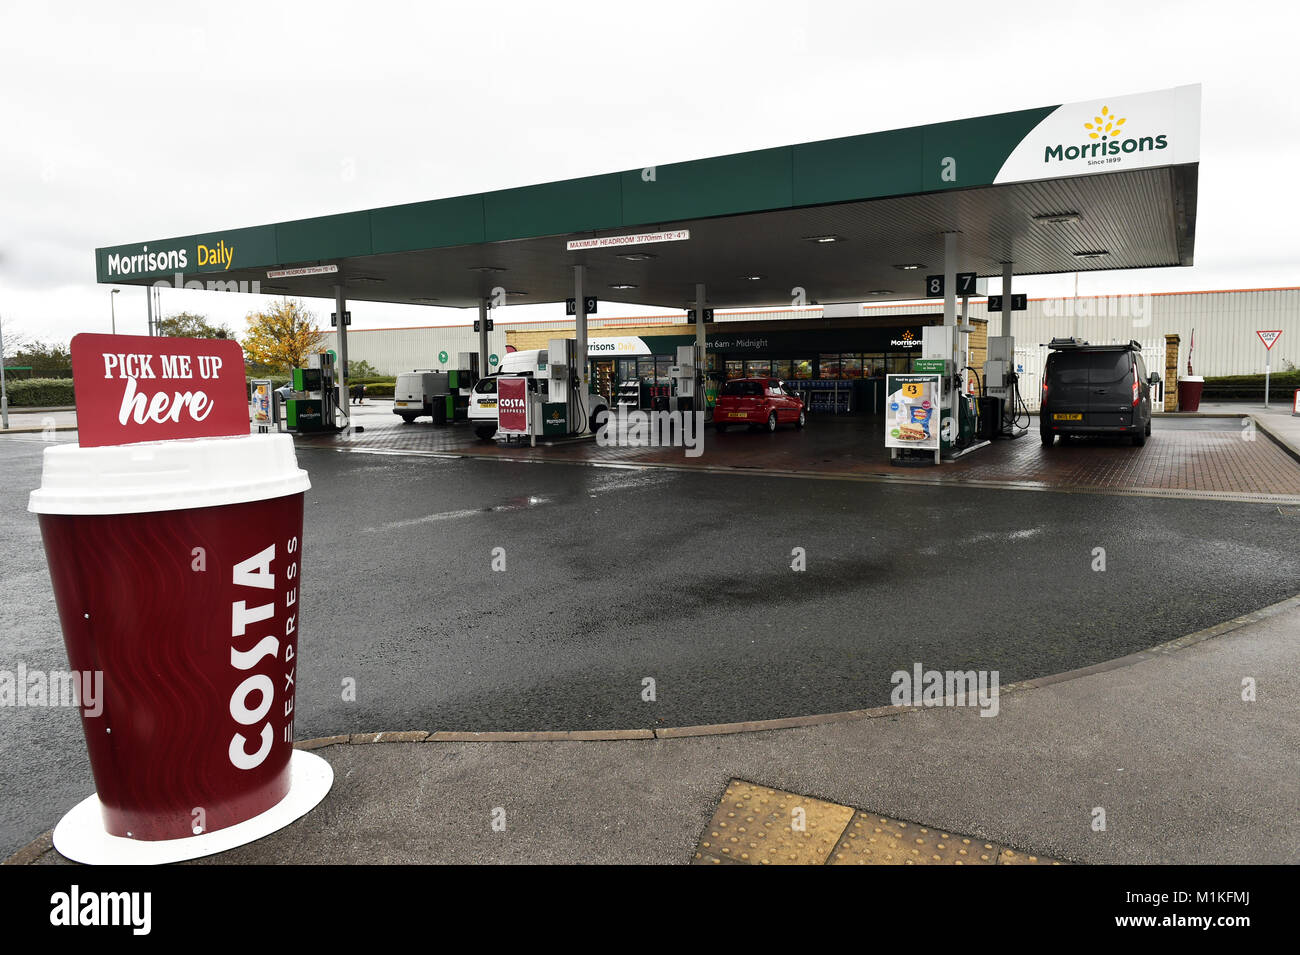 Large plastic Costa Coffee cup on display at a petrol station UK - Stock Image